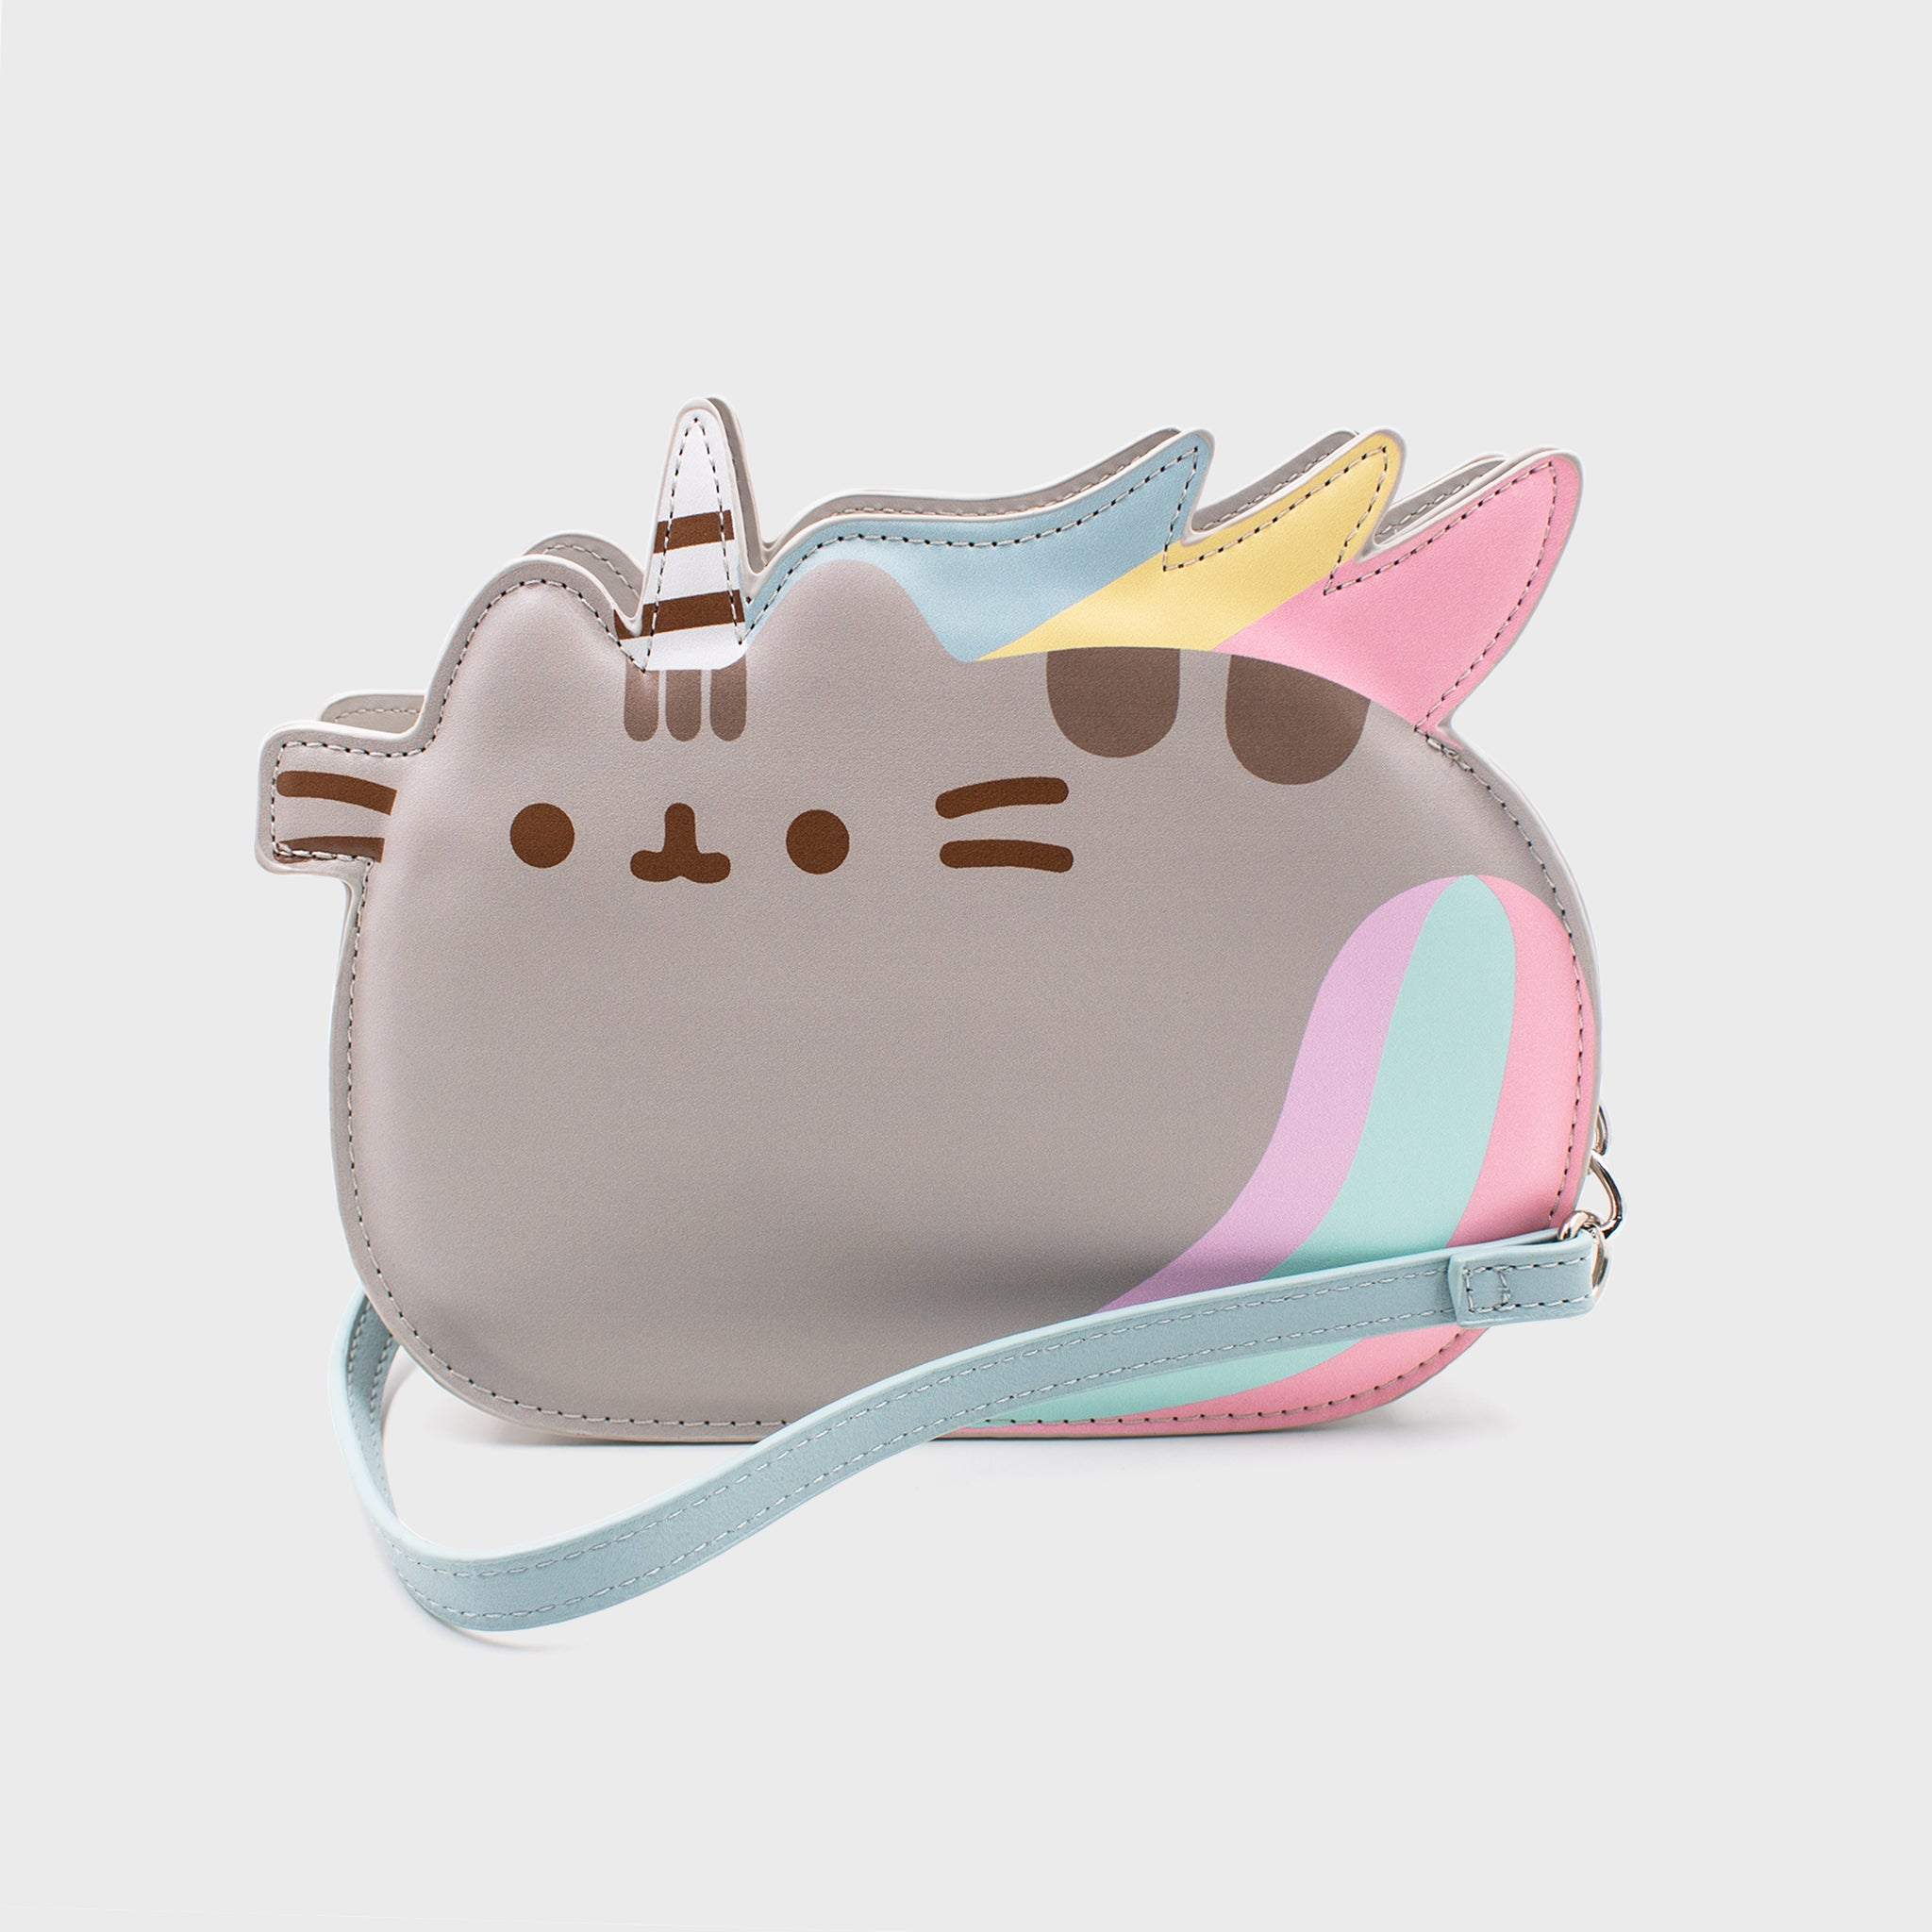 pusheen unicorn pusheenicorn purse crossbody pocketbook cute cat culturefly